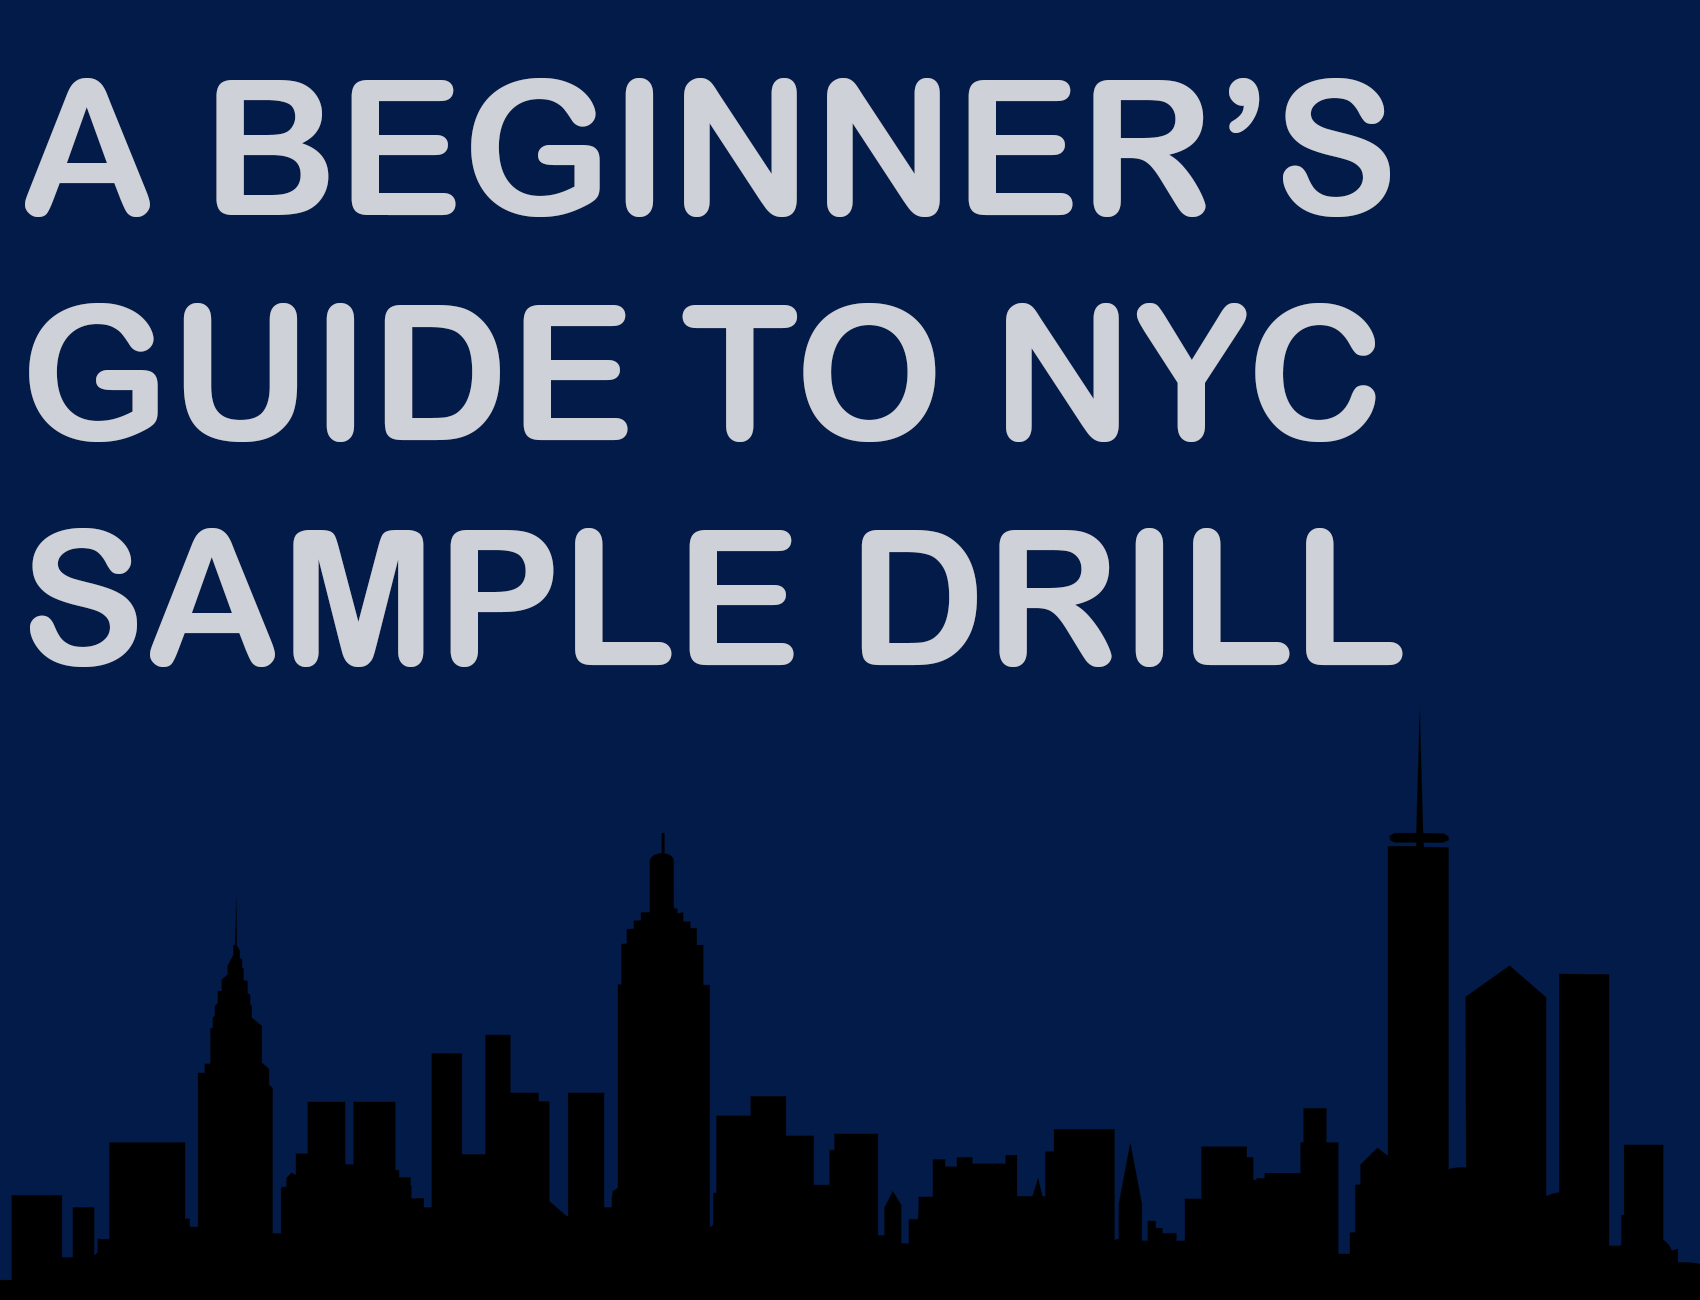 A Beginner's Guide To NYC Sample Drill